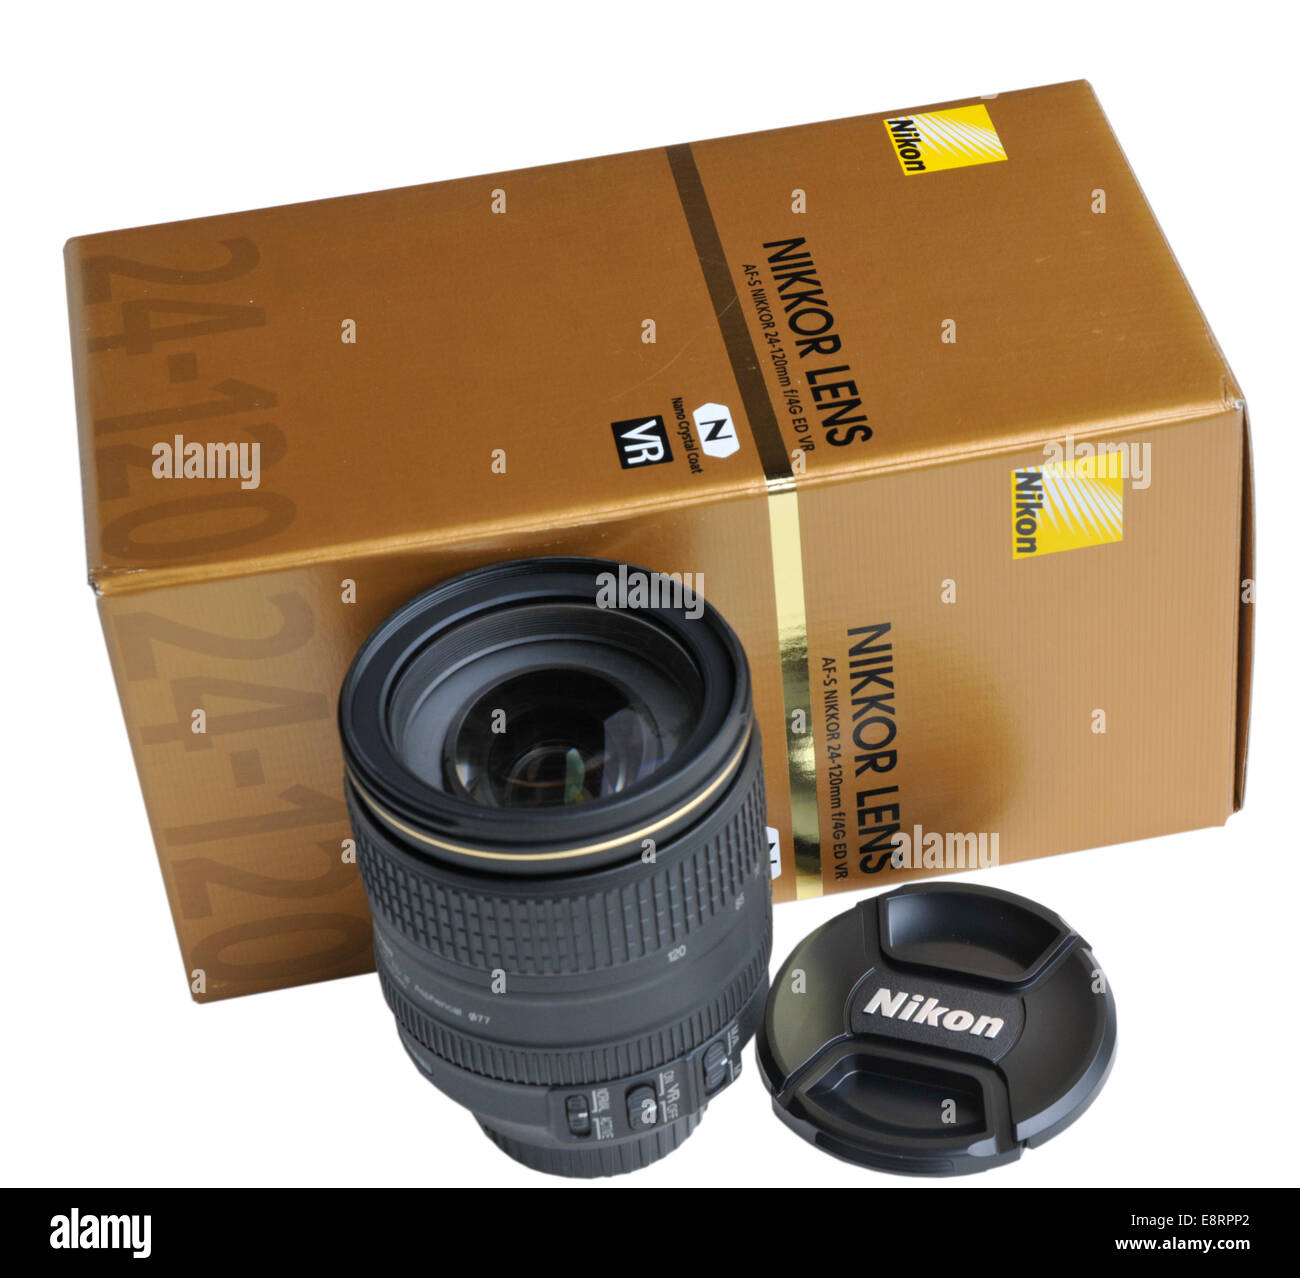 Nikkor 24-120mm f4 zoom lens by Nikon - Stock Image